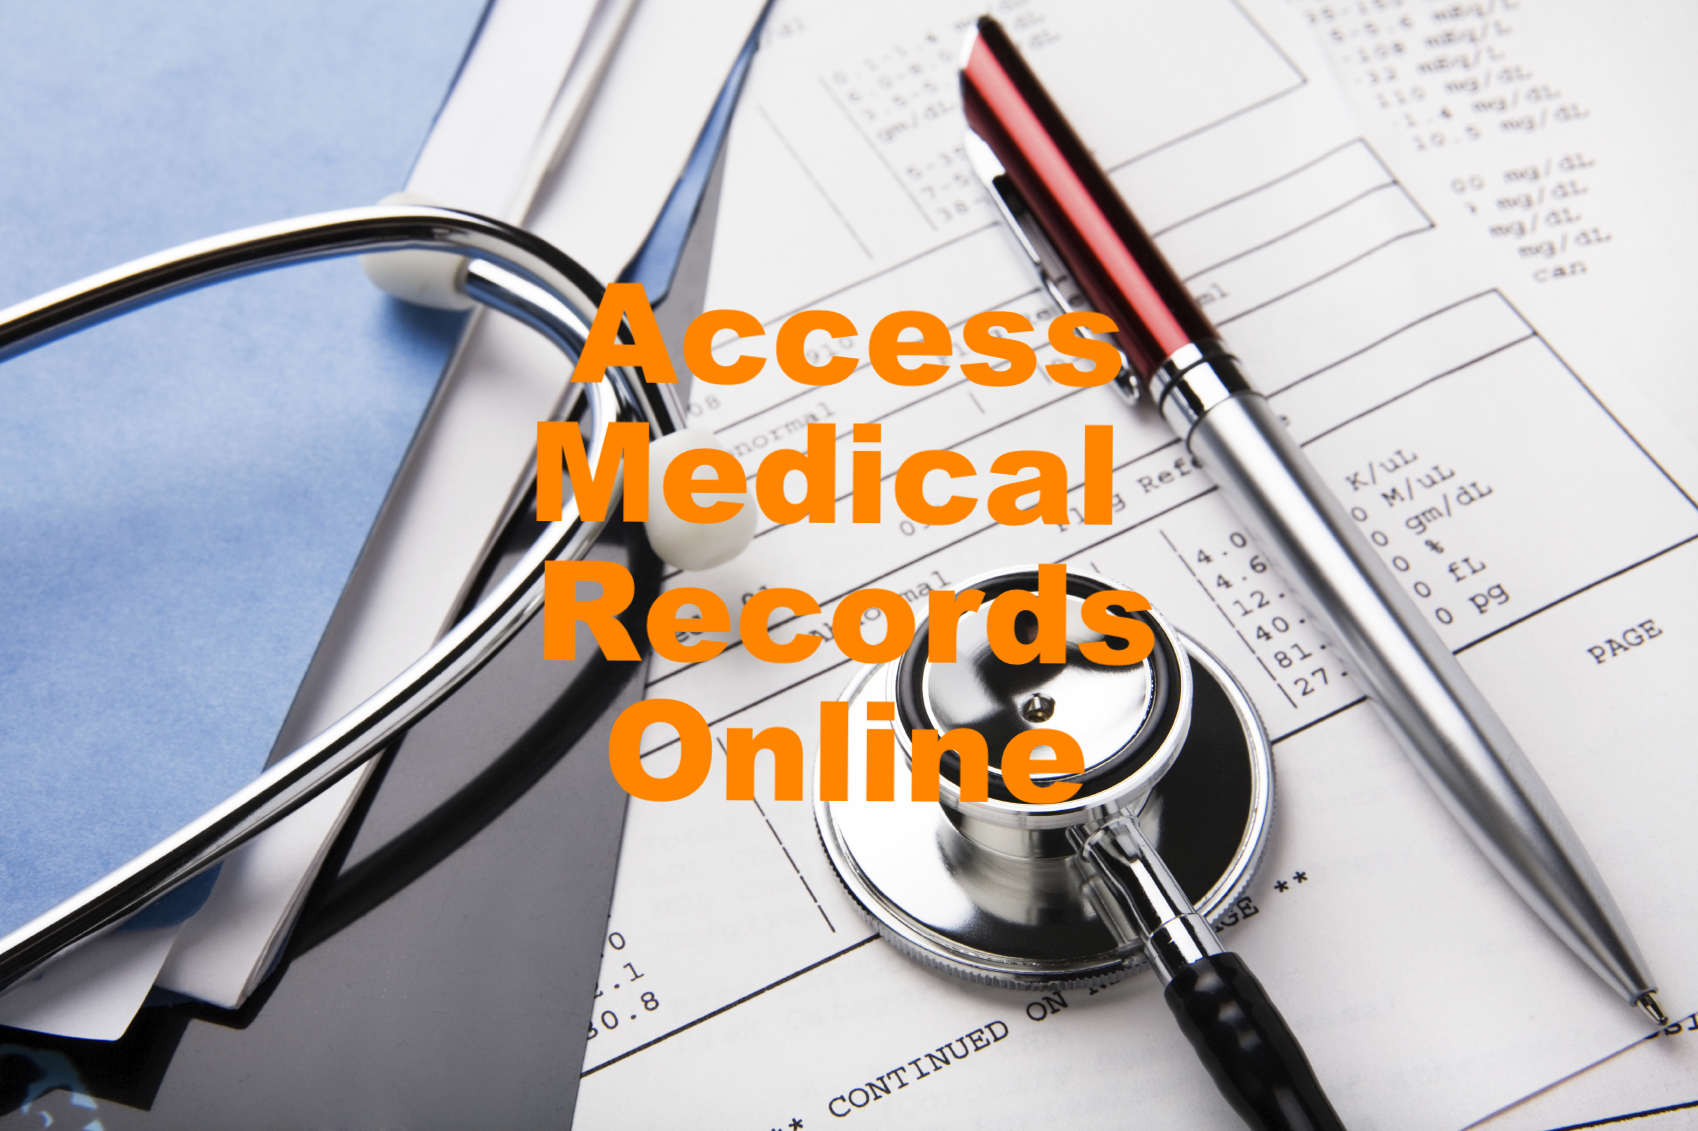 Access Medical Records Online